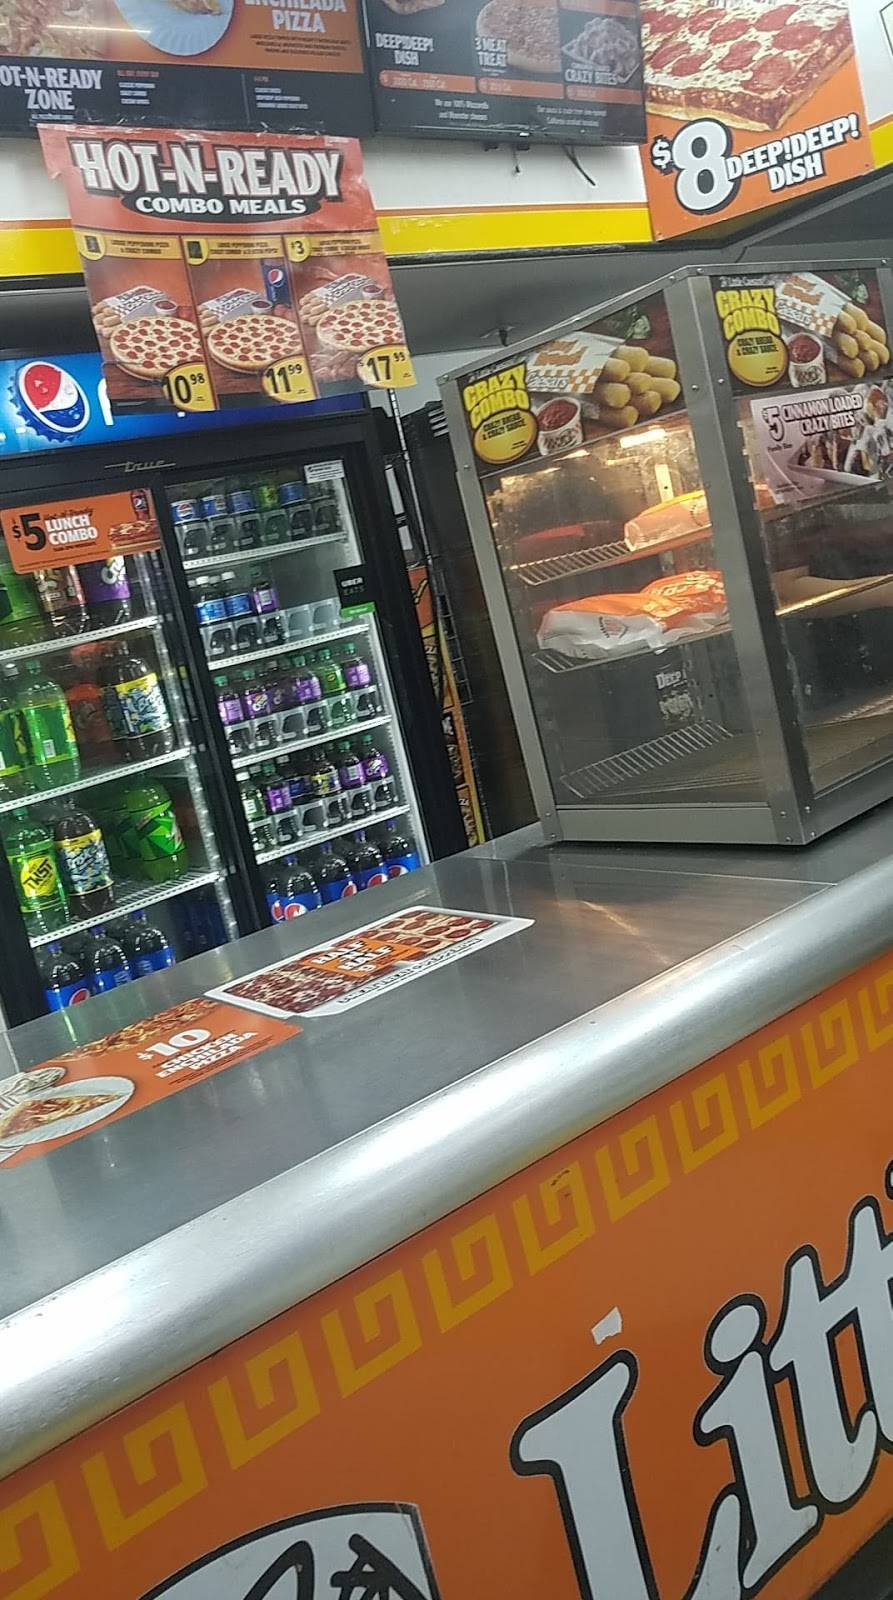 Little Caesars Pizza   meal takeaway   15 E 167th St, Bronx, NY 10452, USA   7189929000 OR +1 718-992-9000